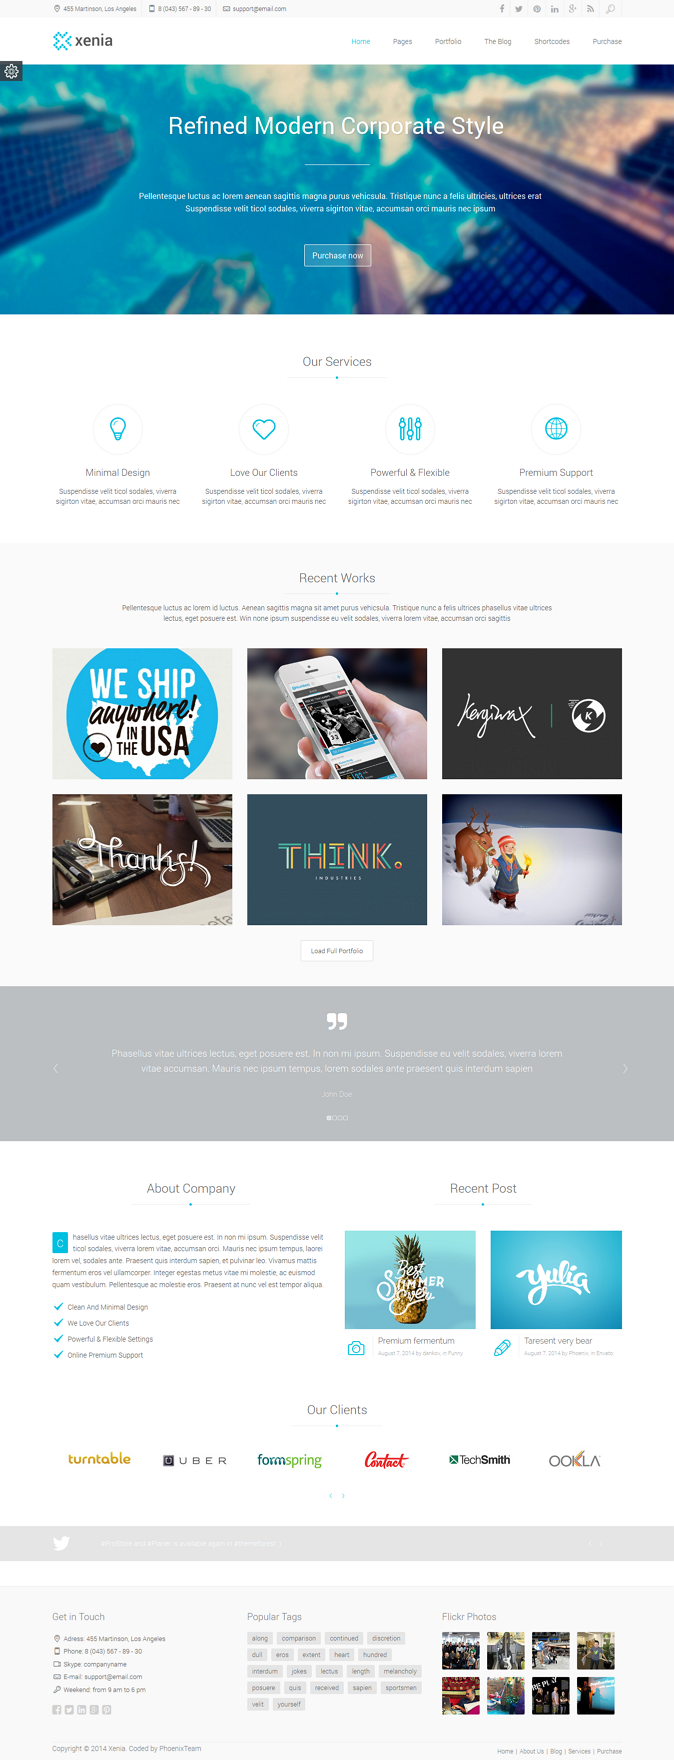 Powerful WordPress theme designed in a clean and minimalistic style. This theme can be used for ...